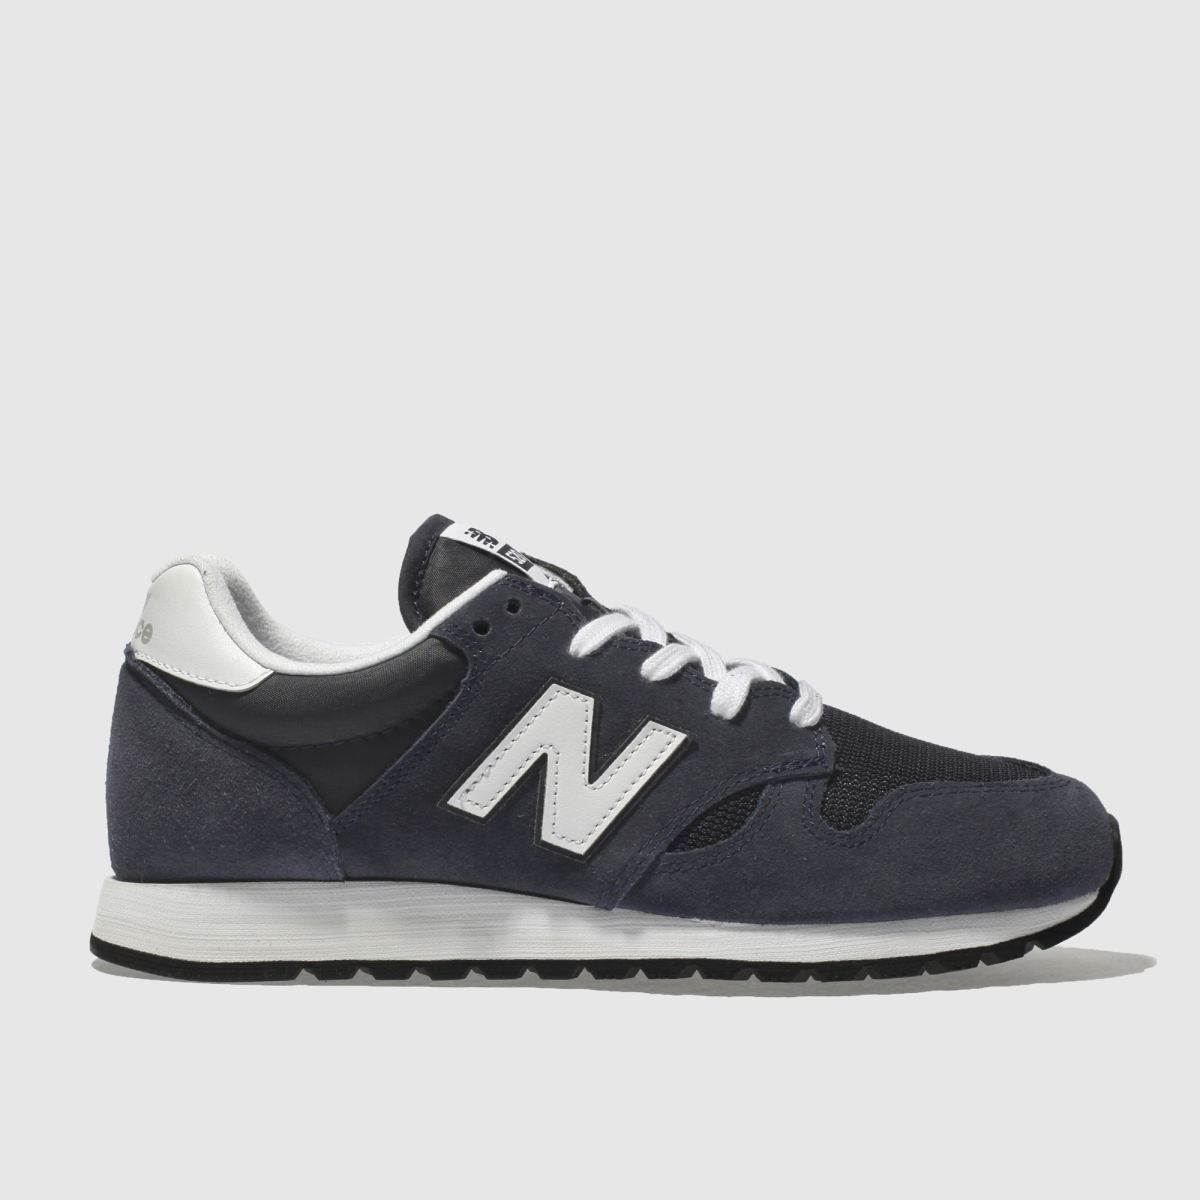 New Balance Navy & White 520 Trainers